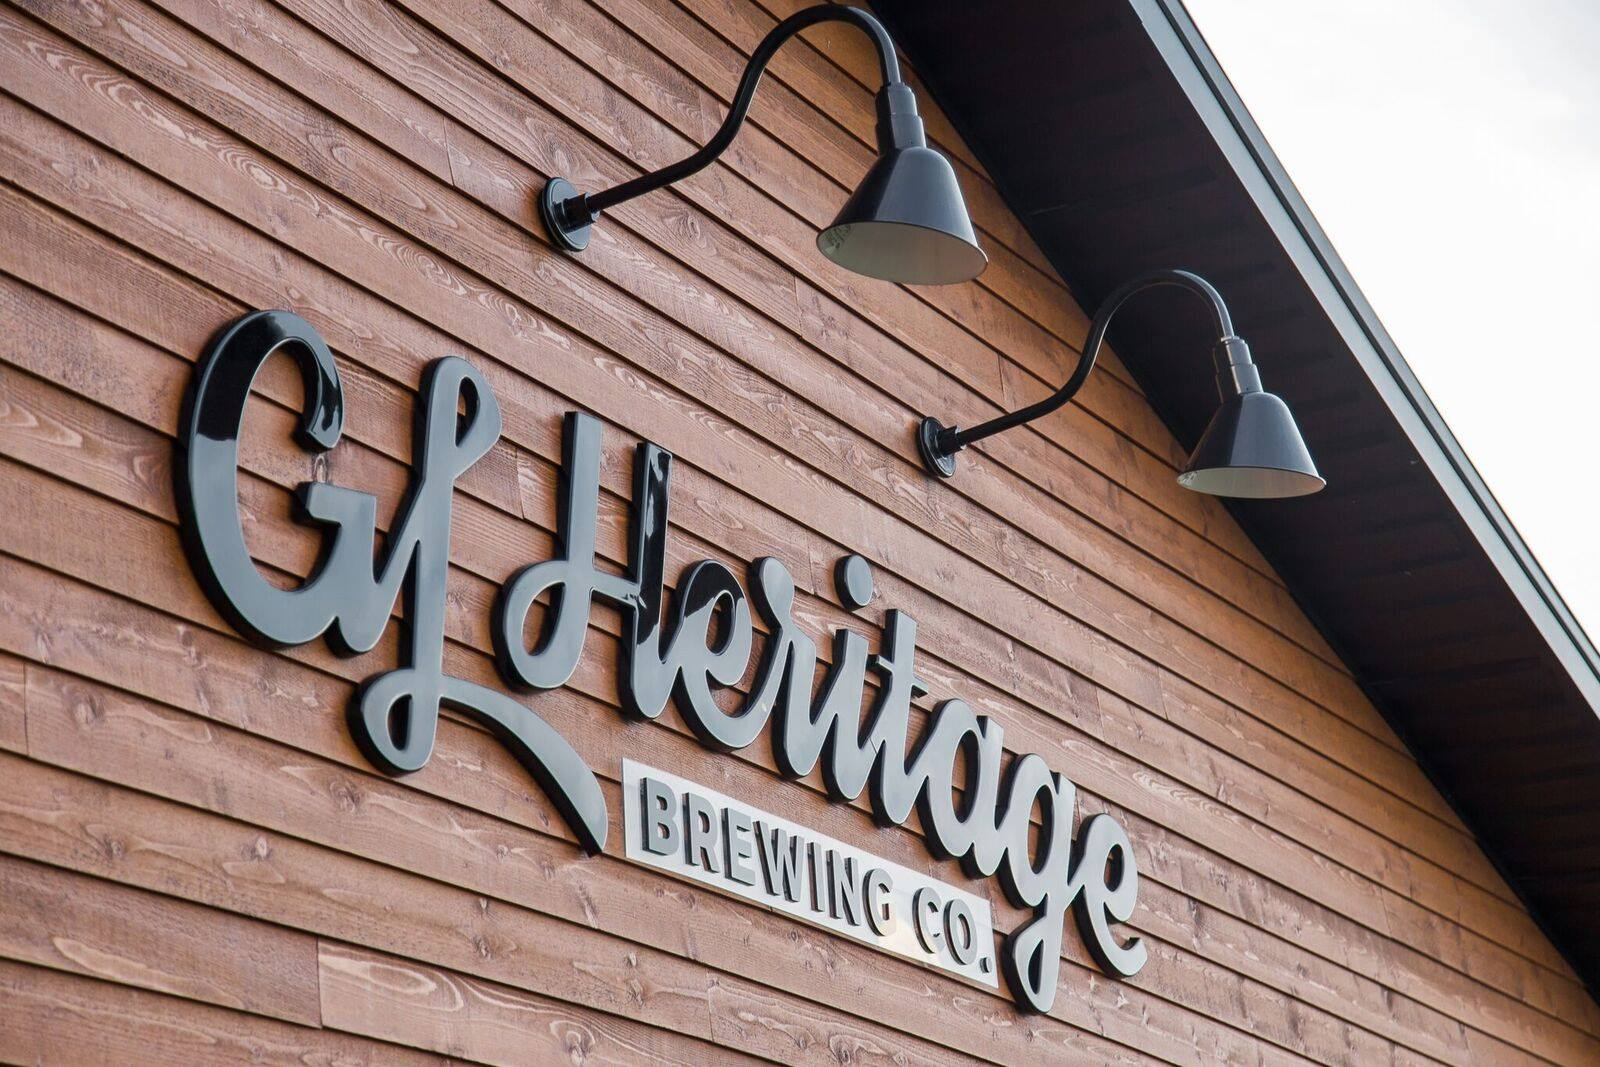 GL Hertiage Brewing Co. in Amherstburg, Ontario.